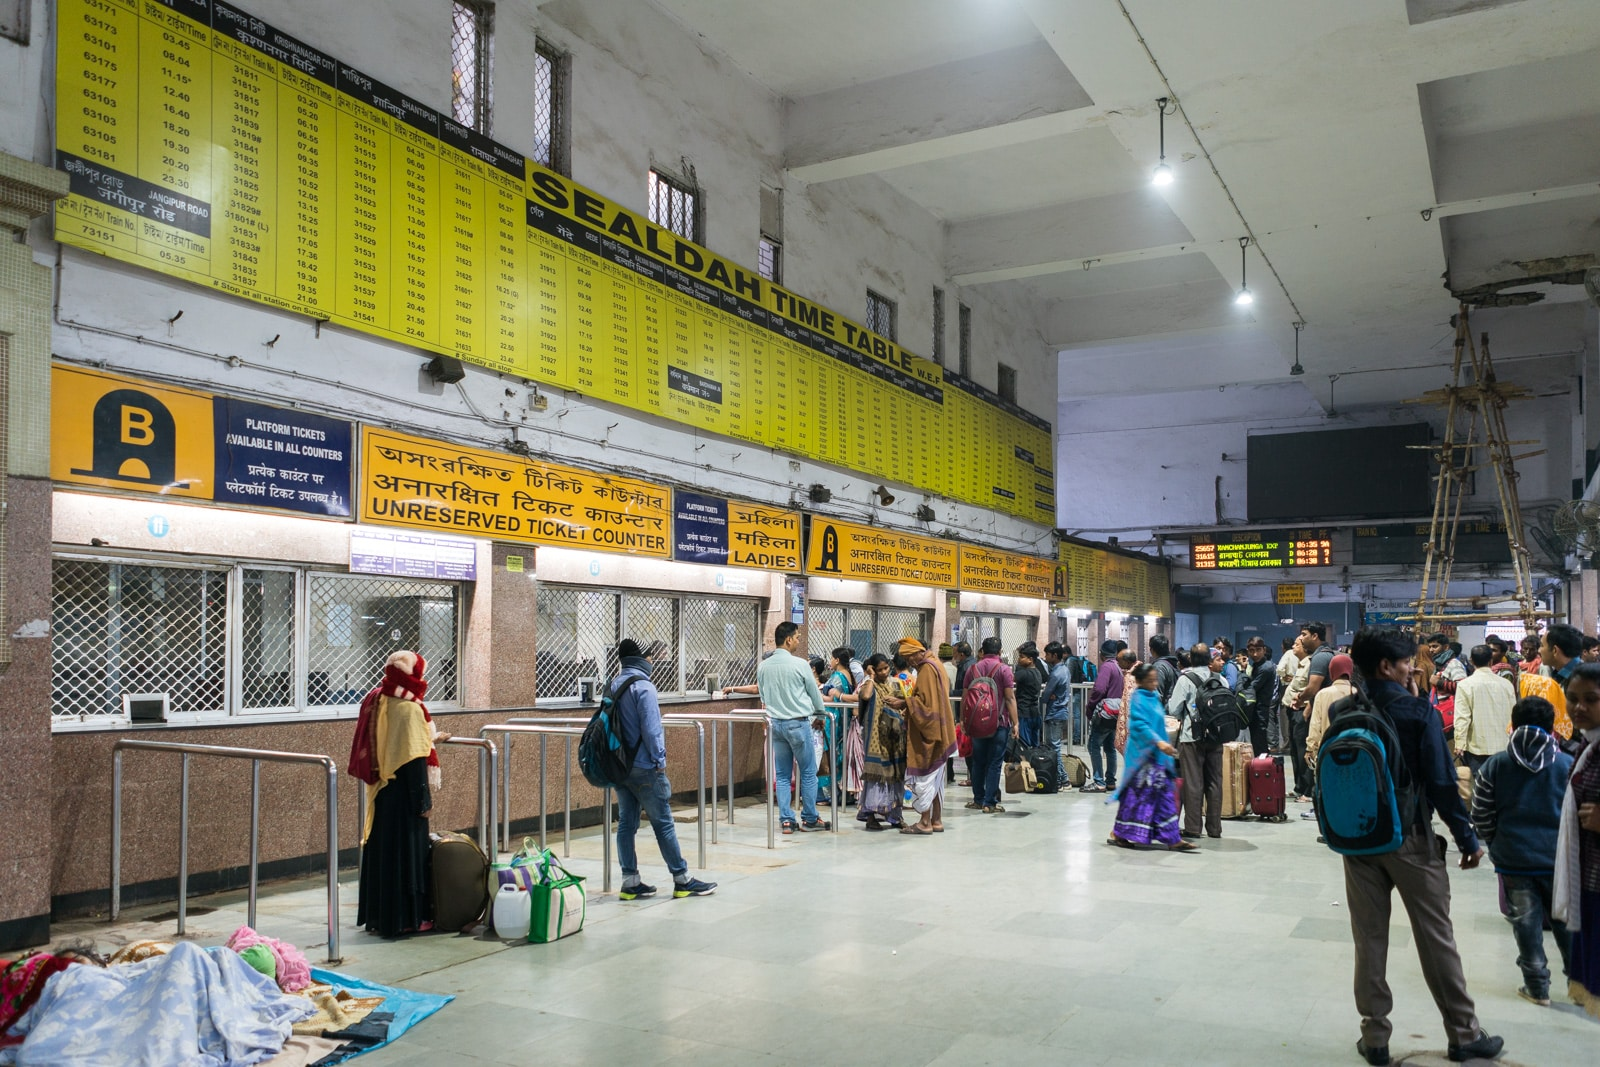 Crossing the India - Bangladesh border at Petrapole and Benapole - Ticket counter at Sealdah Railway Station in Kolkata - Lost With Purpose travel blog